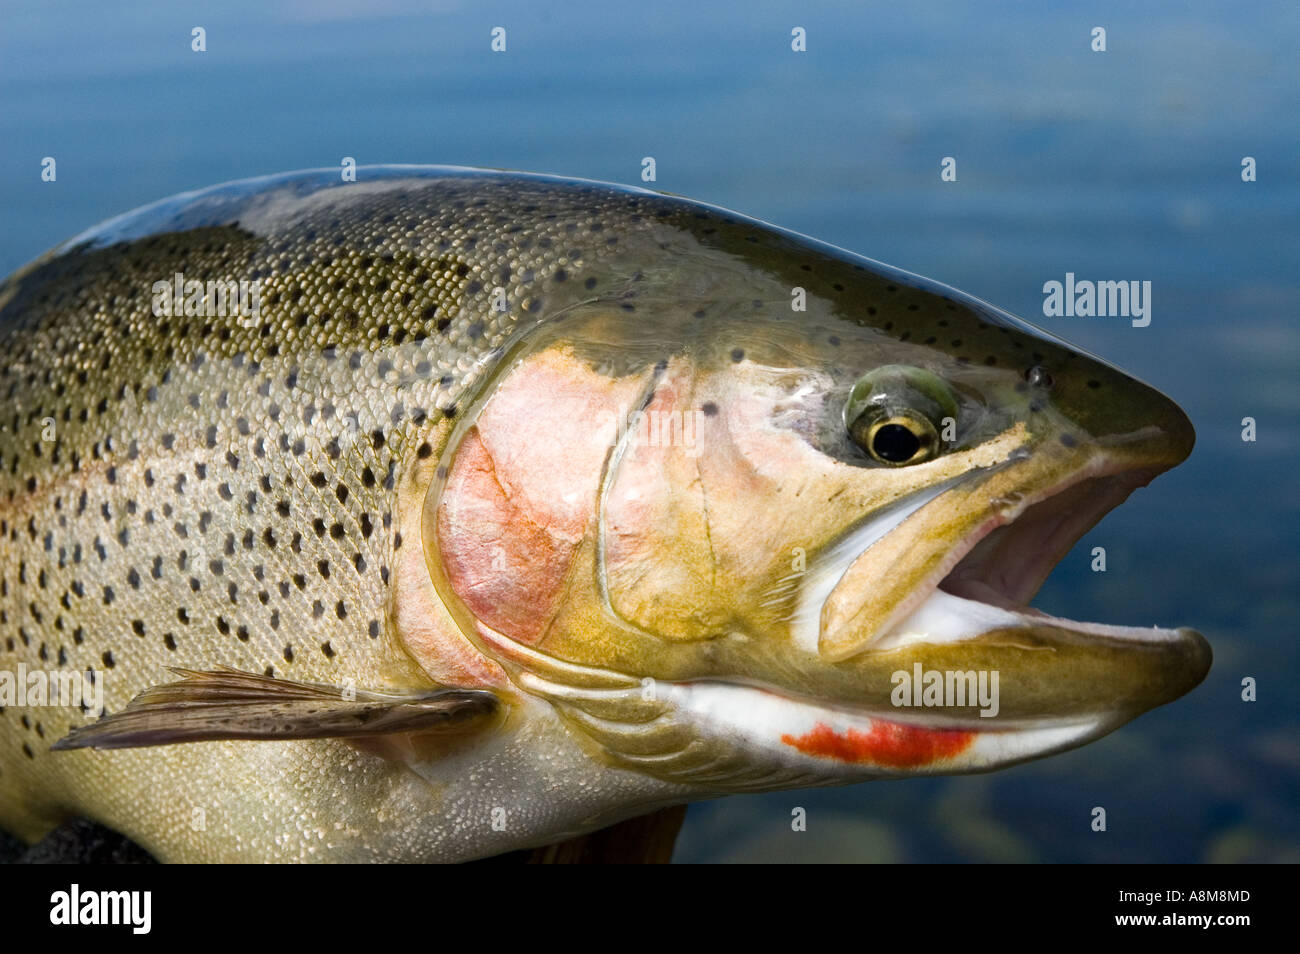 idaho fly fishing close up of large cutthroat rainbow hybrid trout